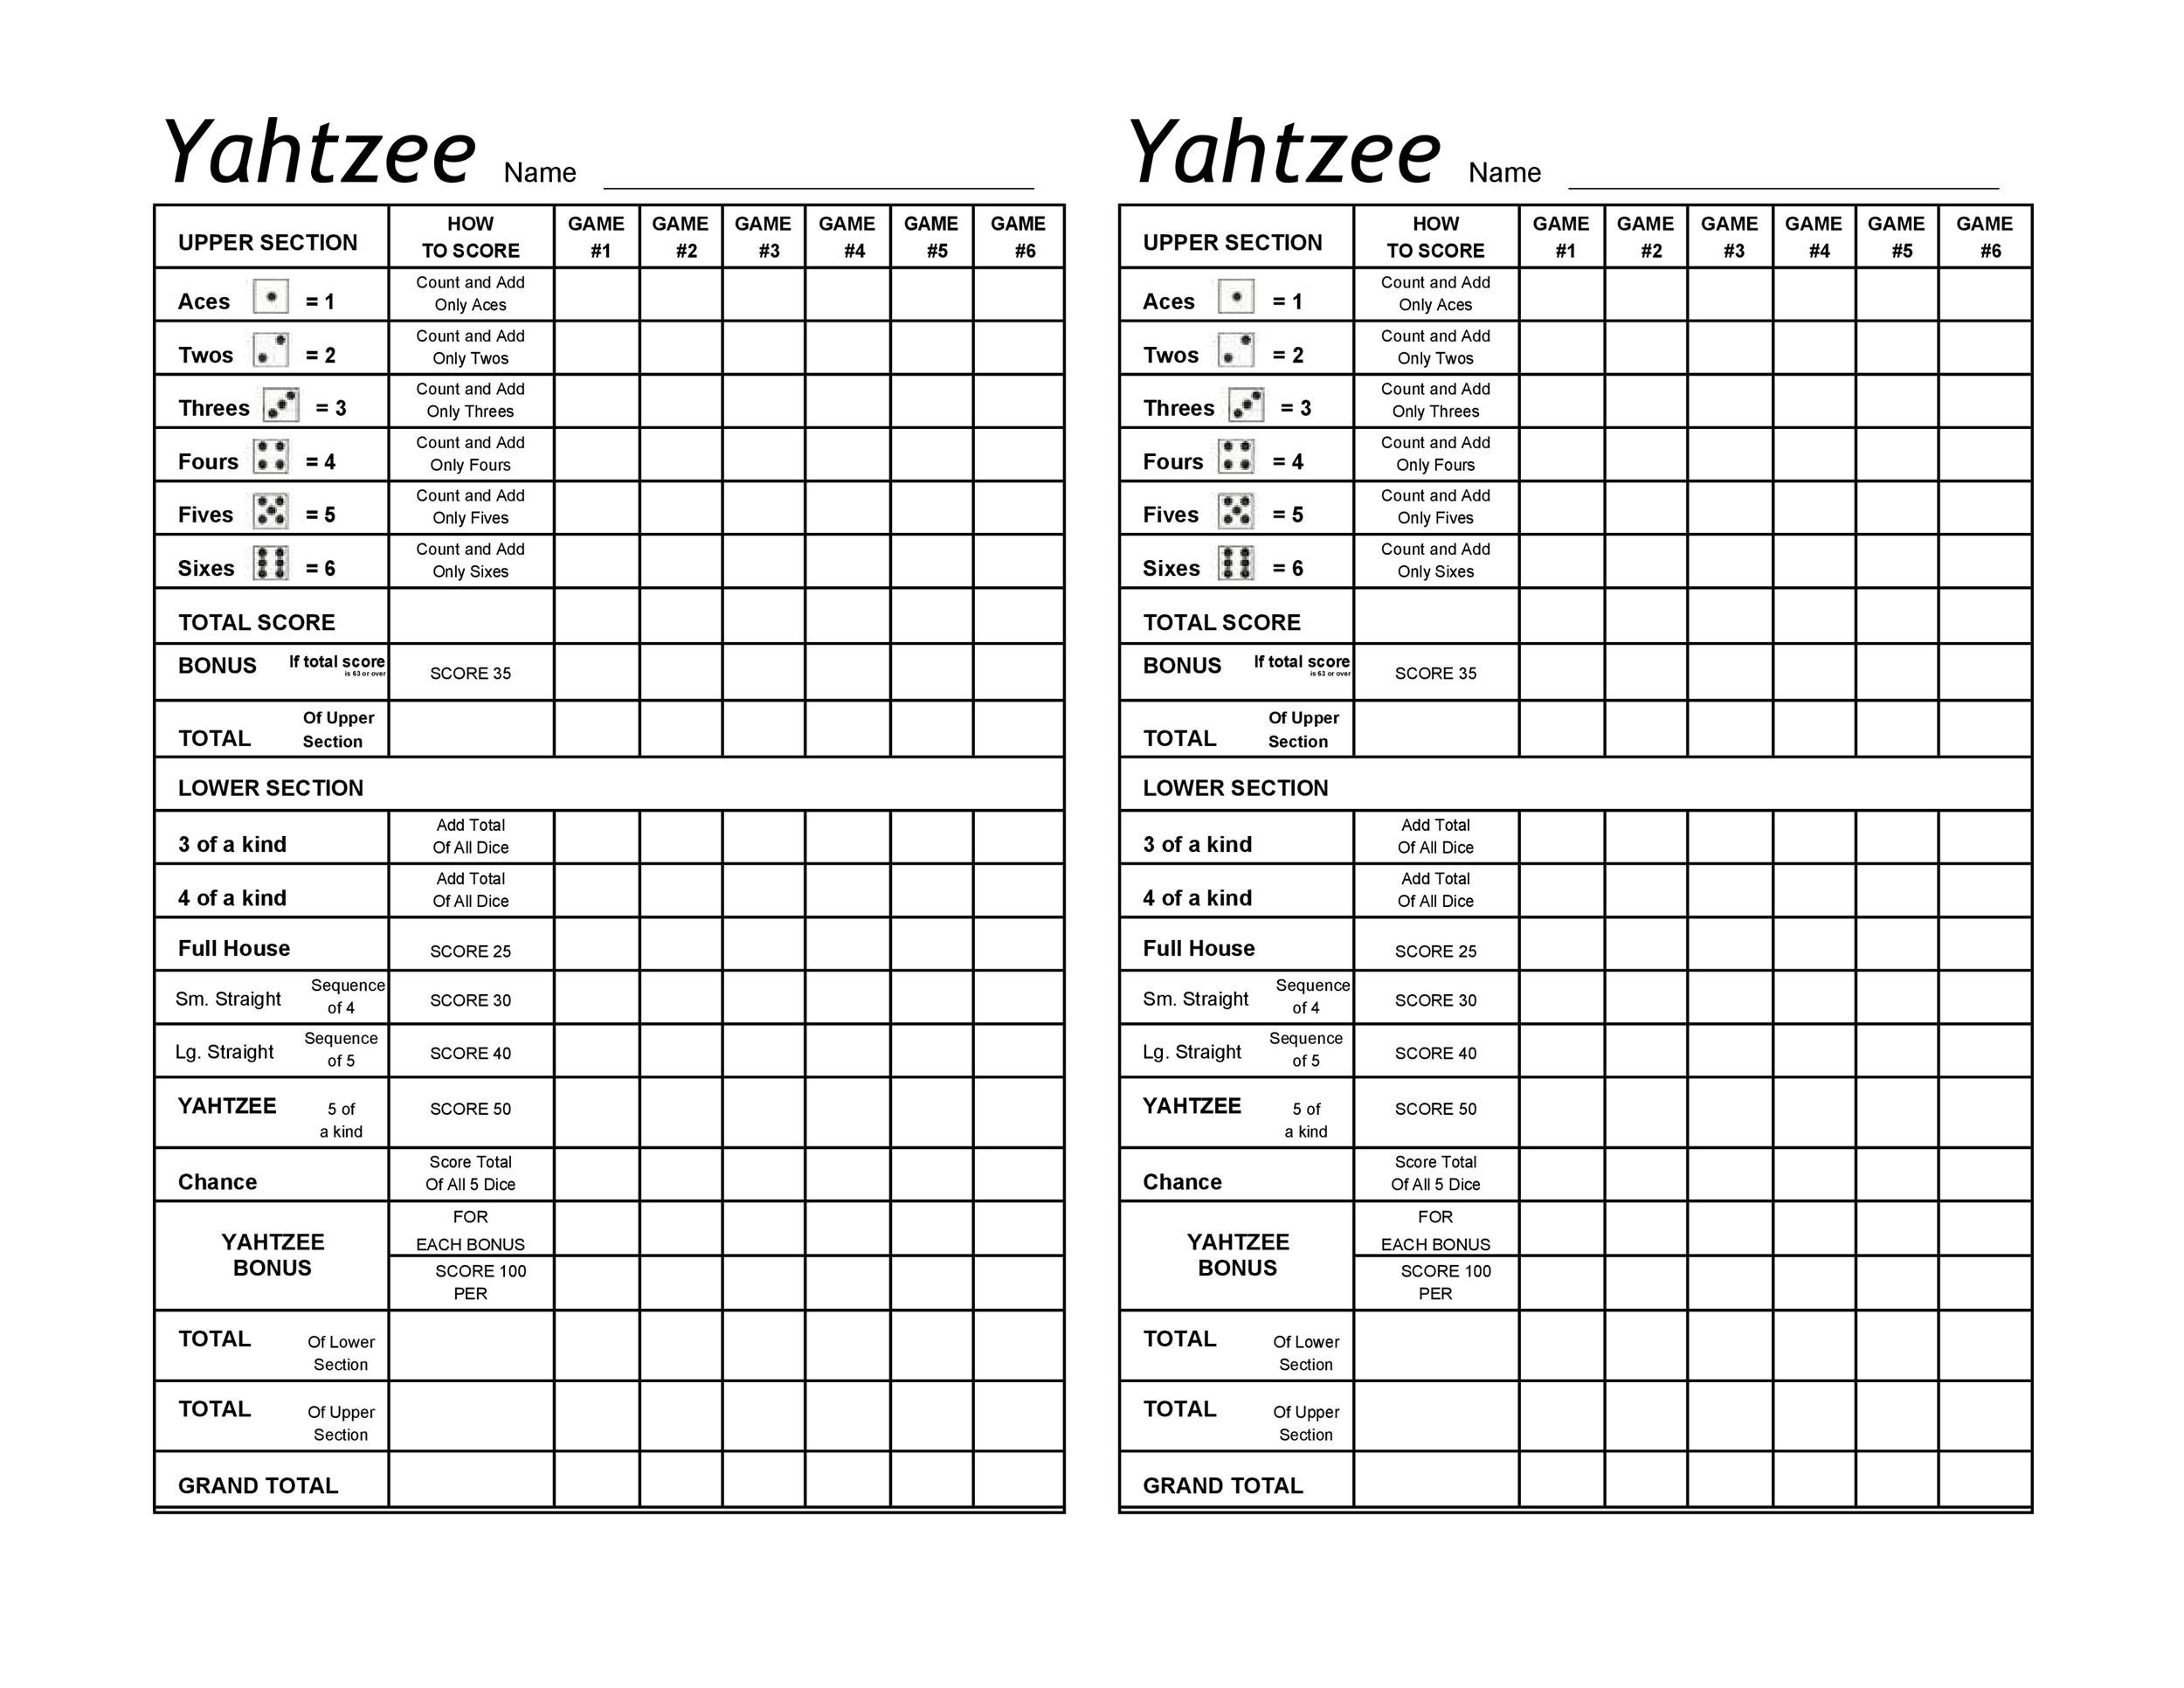 graphic regarding Yahtzee Printable Score Sheets identify Printable Yahtzee Rating Card Pdf